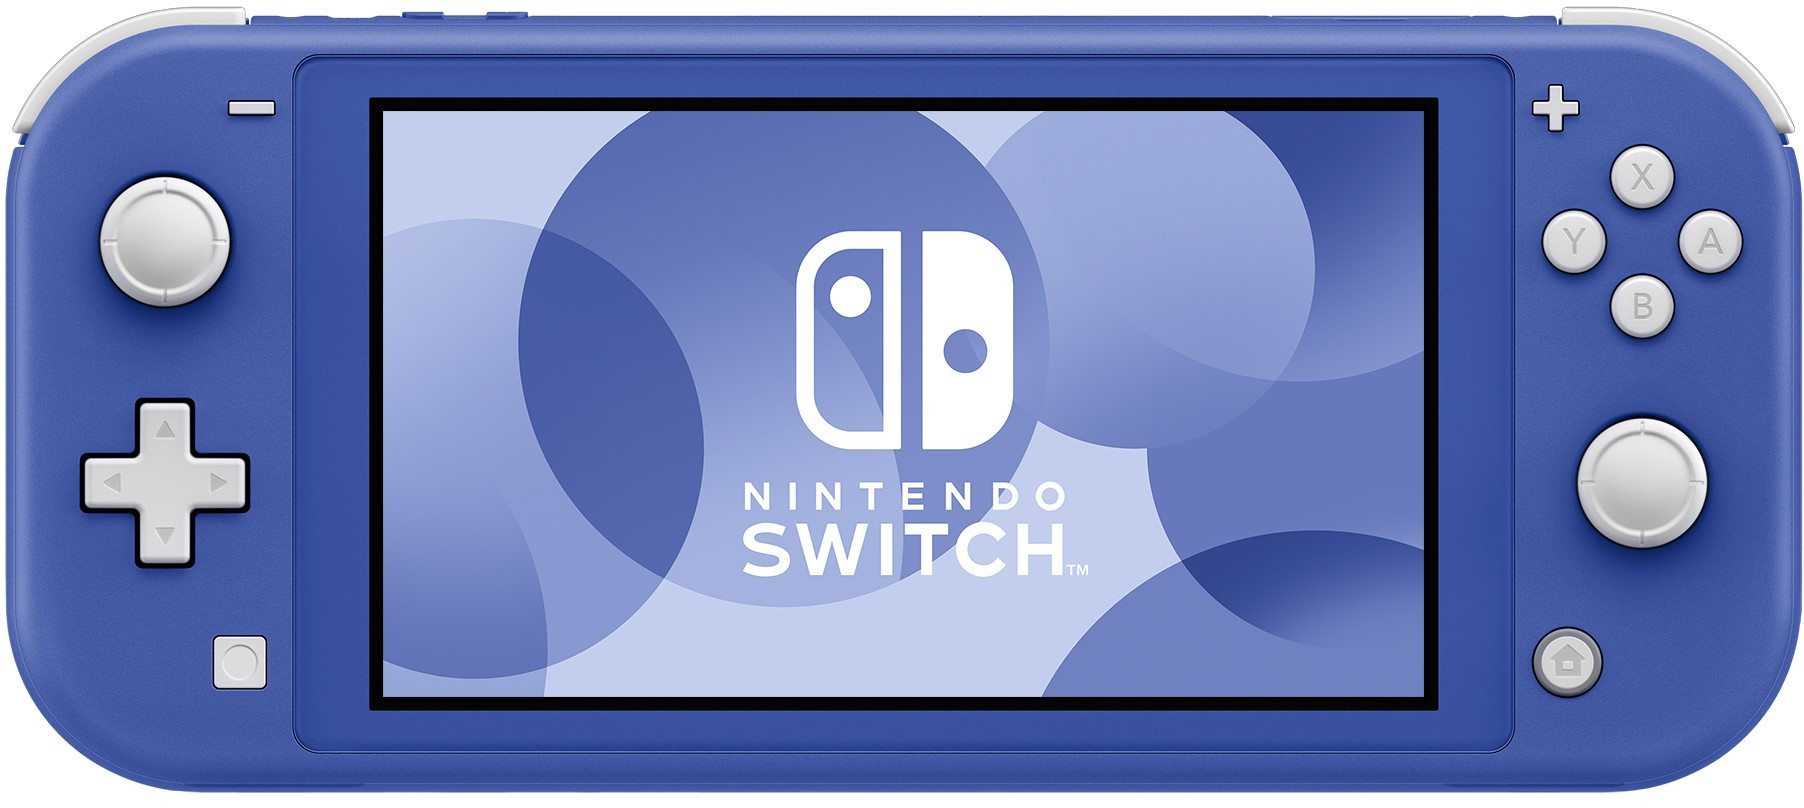 Front view of the blue model of the Nintendo Switch Lite